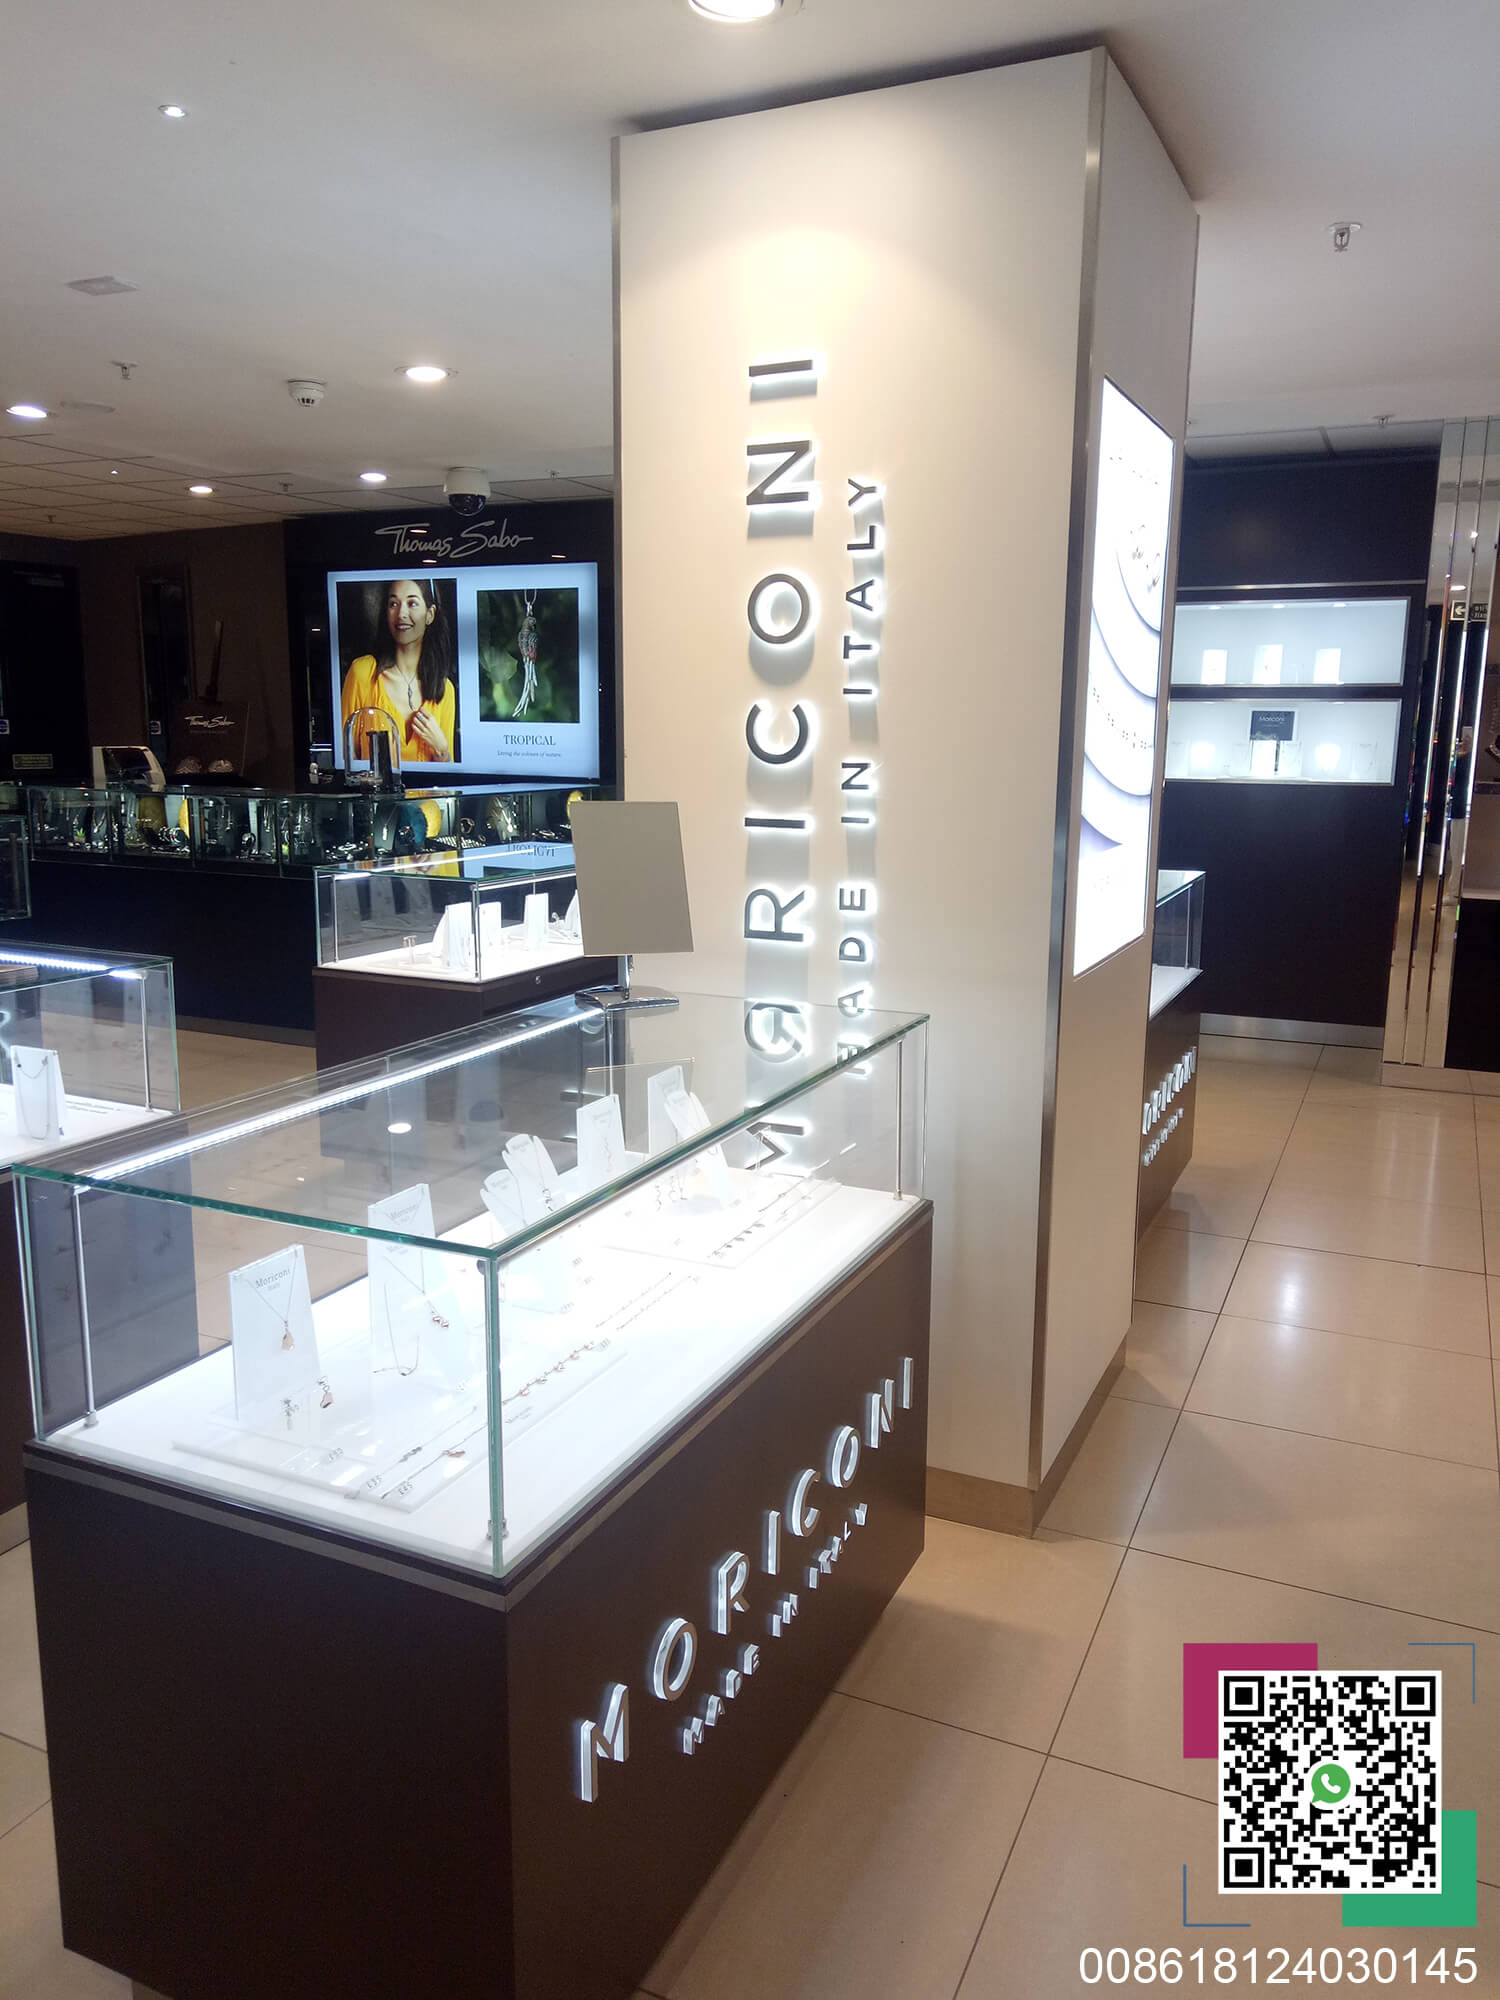 MORICONI jewelry glass display cabinet and image column